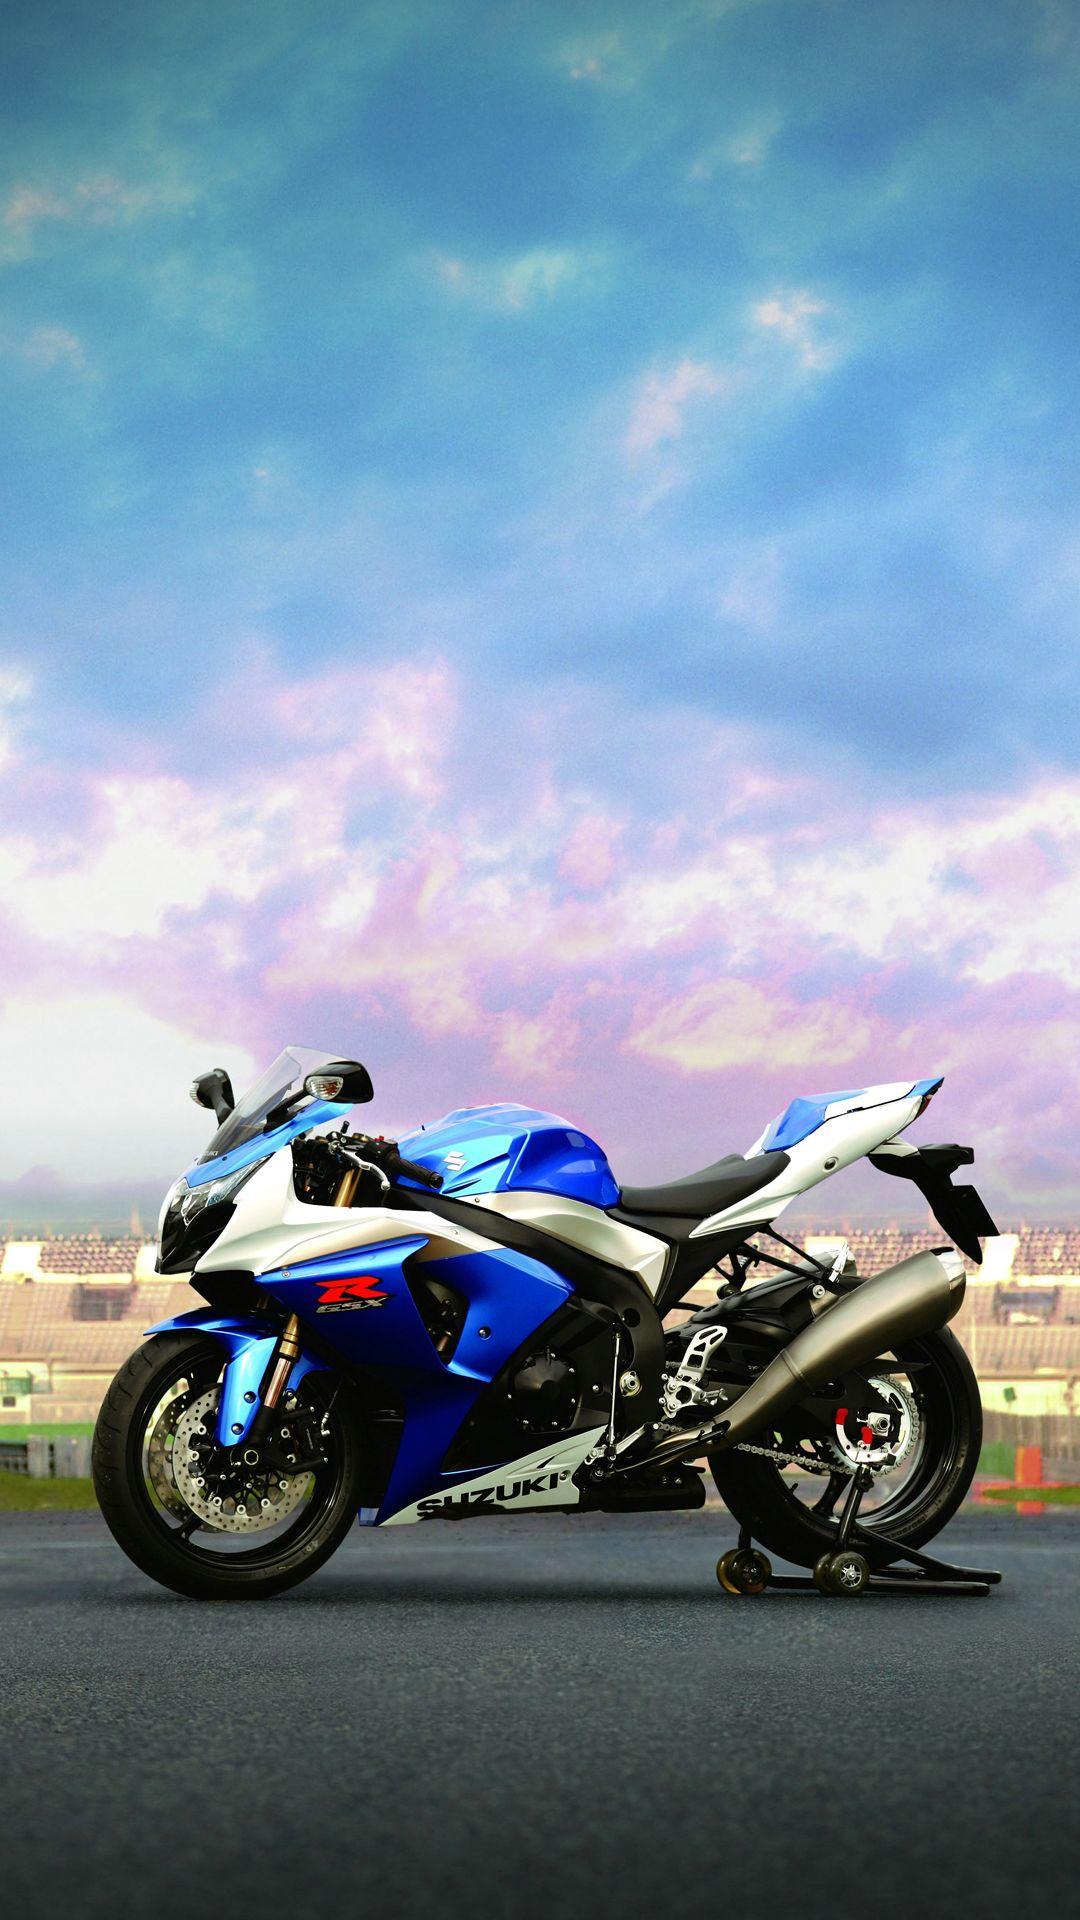 1080x1920 Suzuki GSXR1000 - Best htc one wallpapers, free and easy to ...